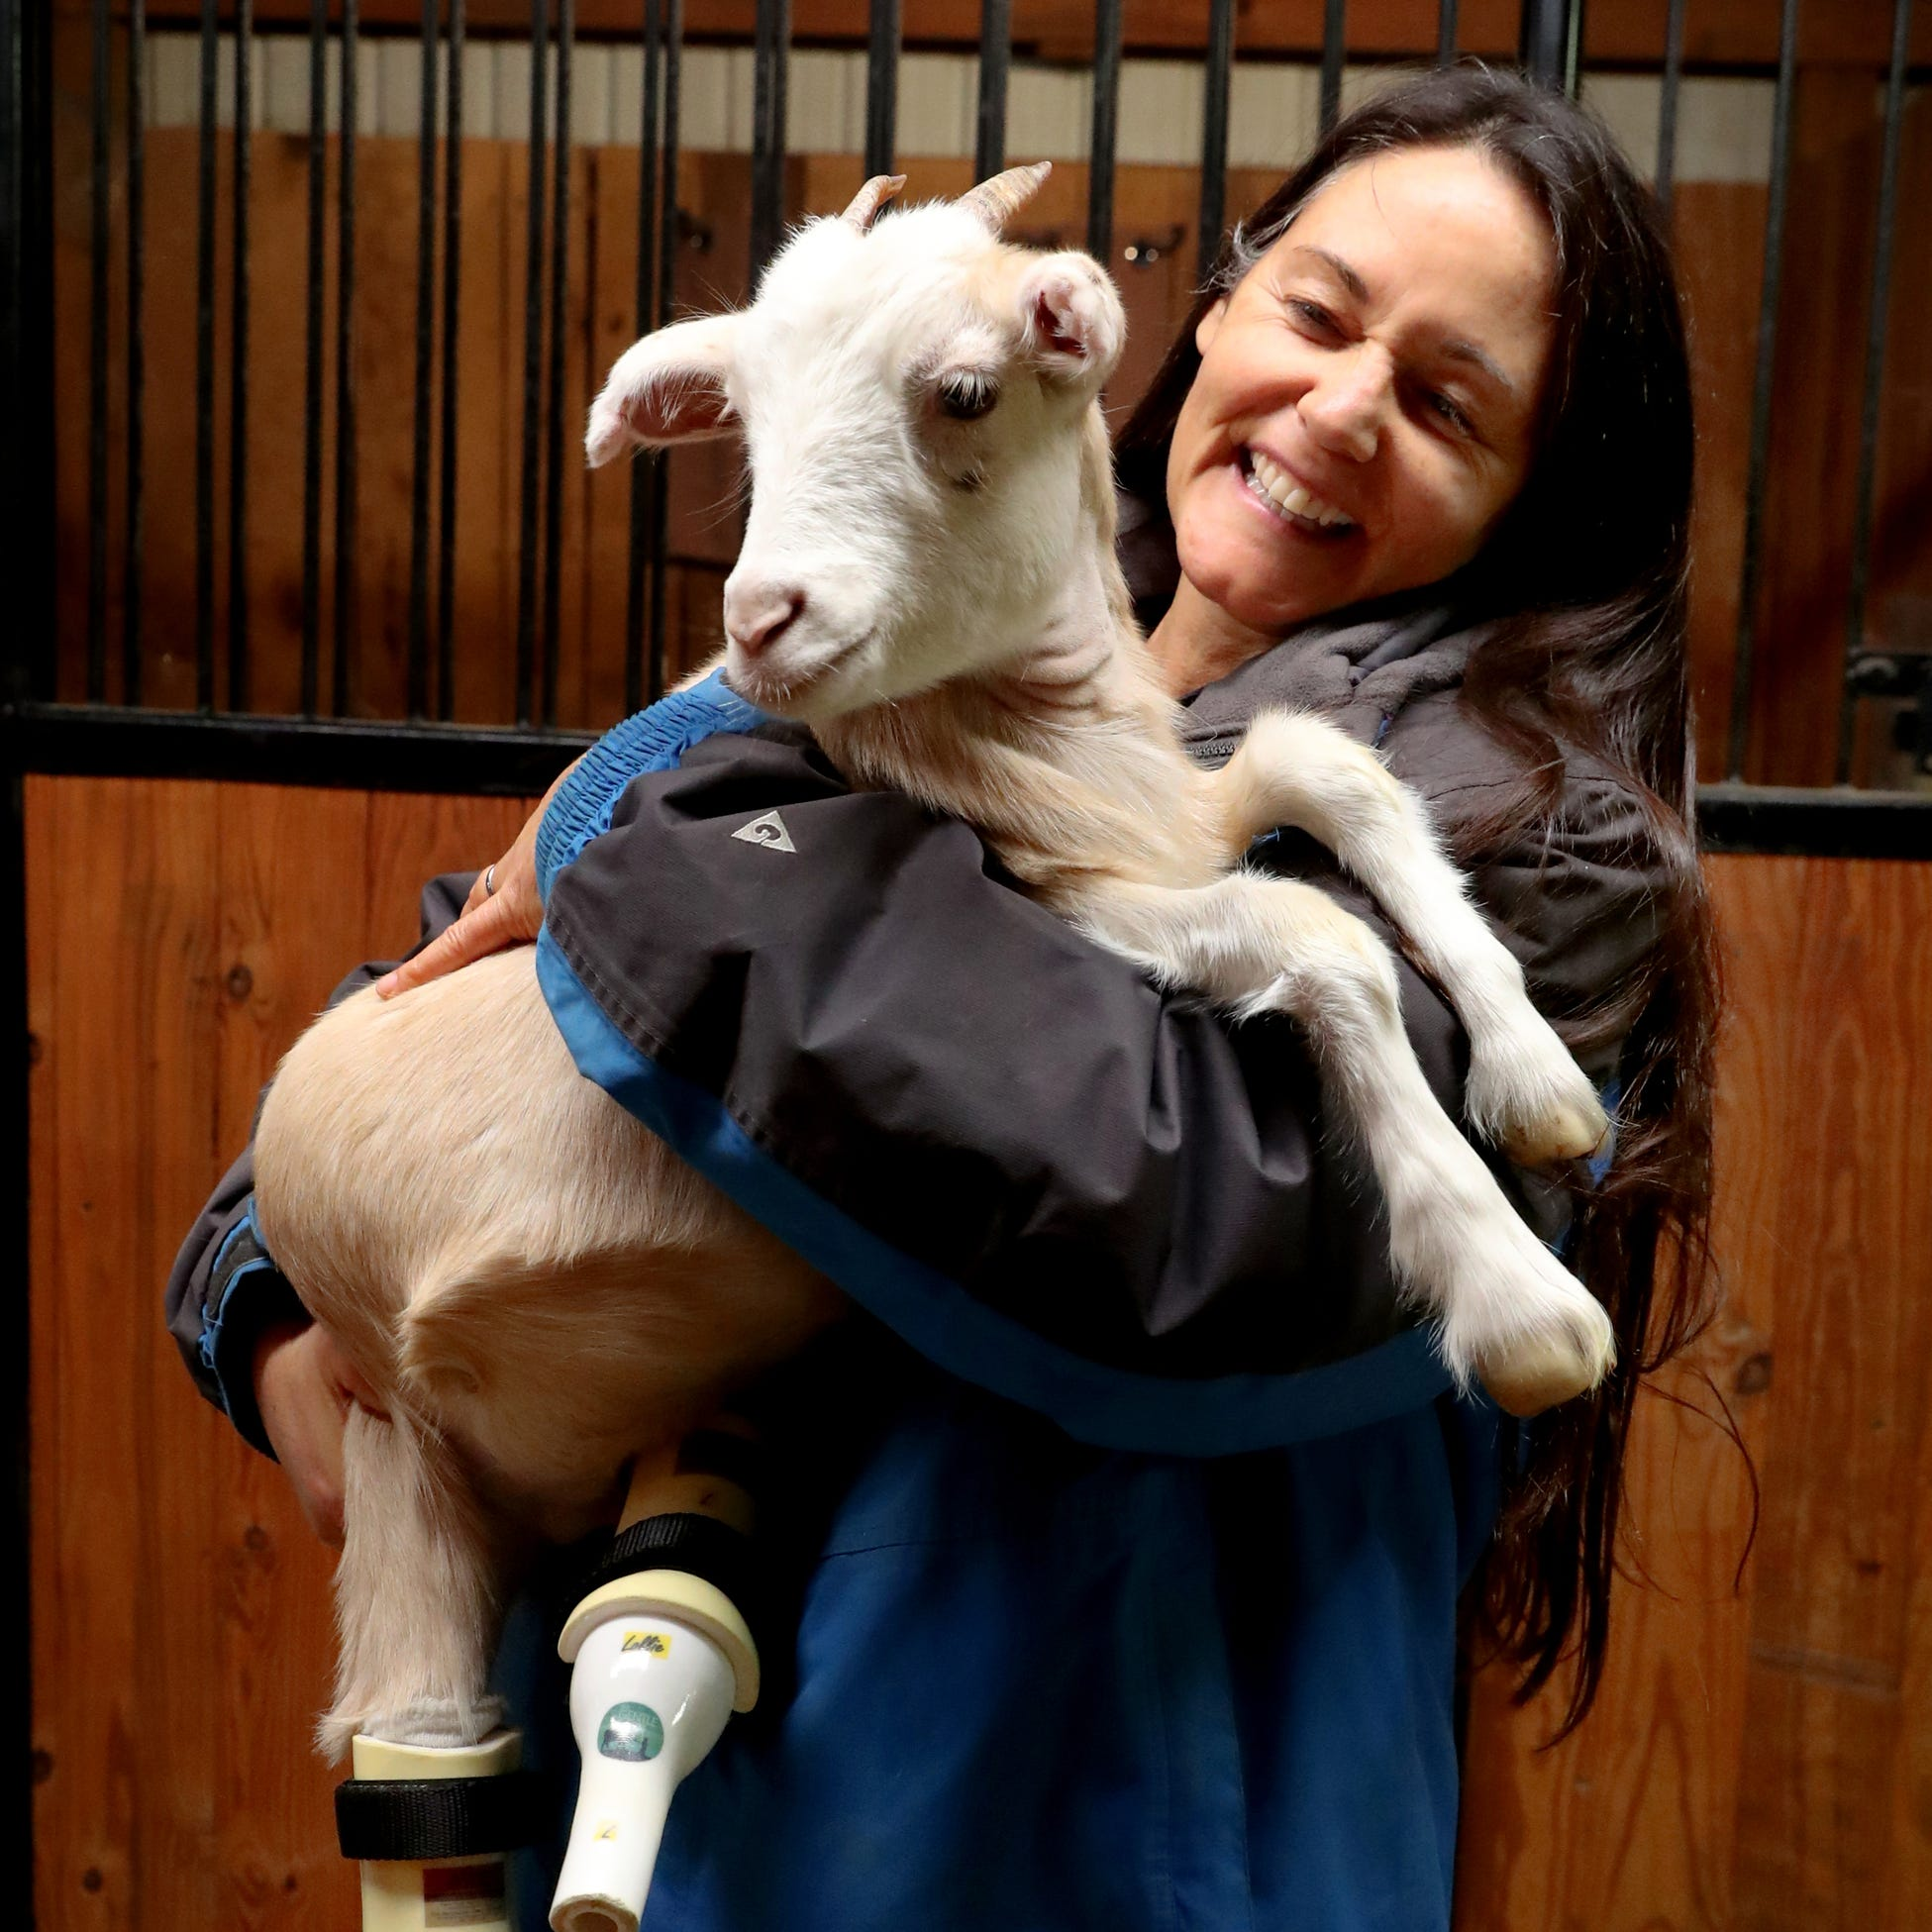 'Fancy feet': Lolli the goat gets prosthetic legs and new home at Murfreesboro's Gentle Barn